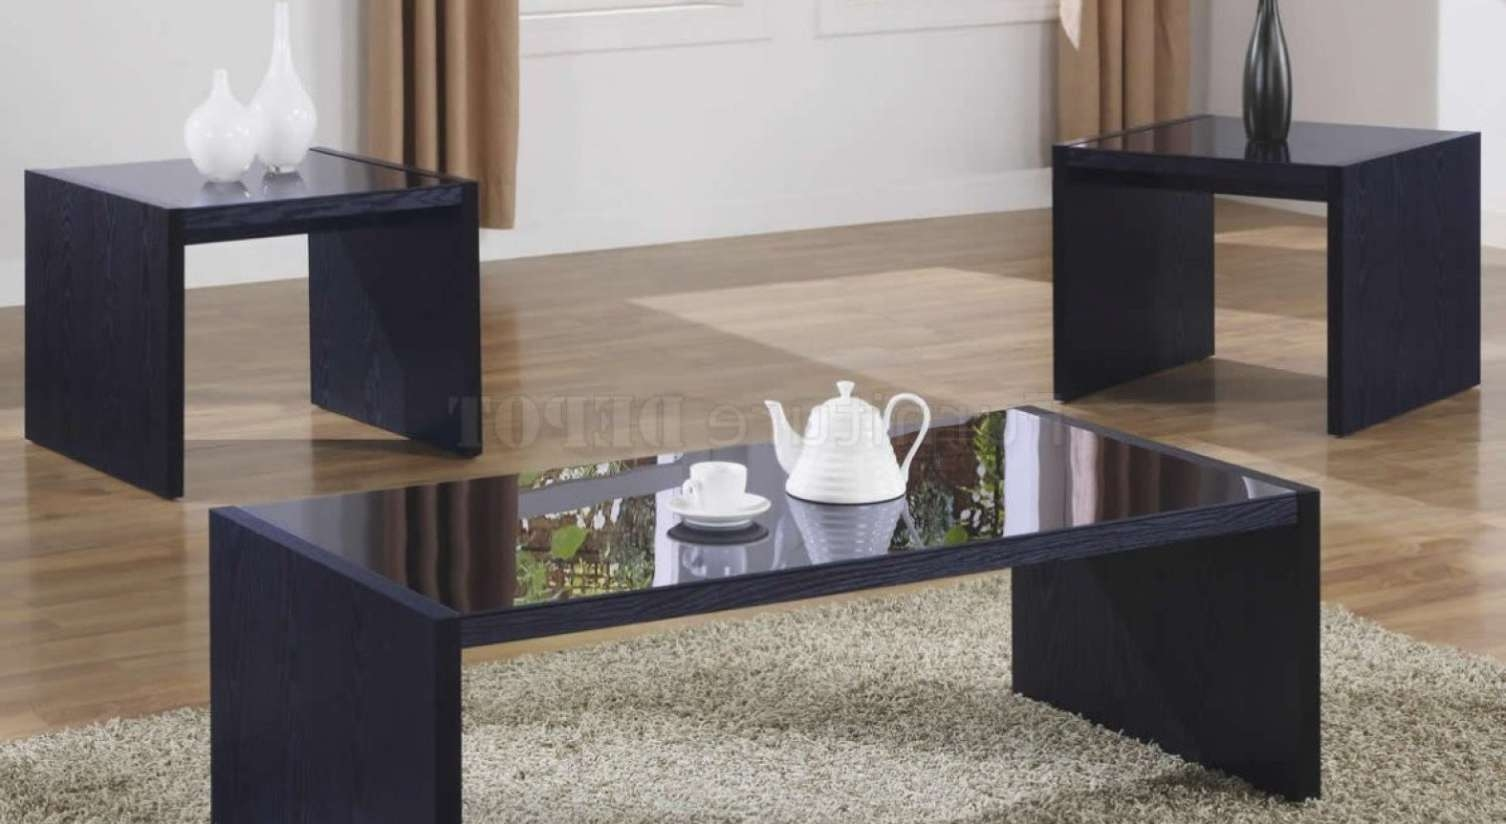 Coffee Table : Elena Coffee Tables Contemporary Elena Coffee Table Regarding Popular Elena Coffee Tables (View 19 of 20)